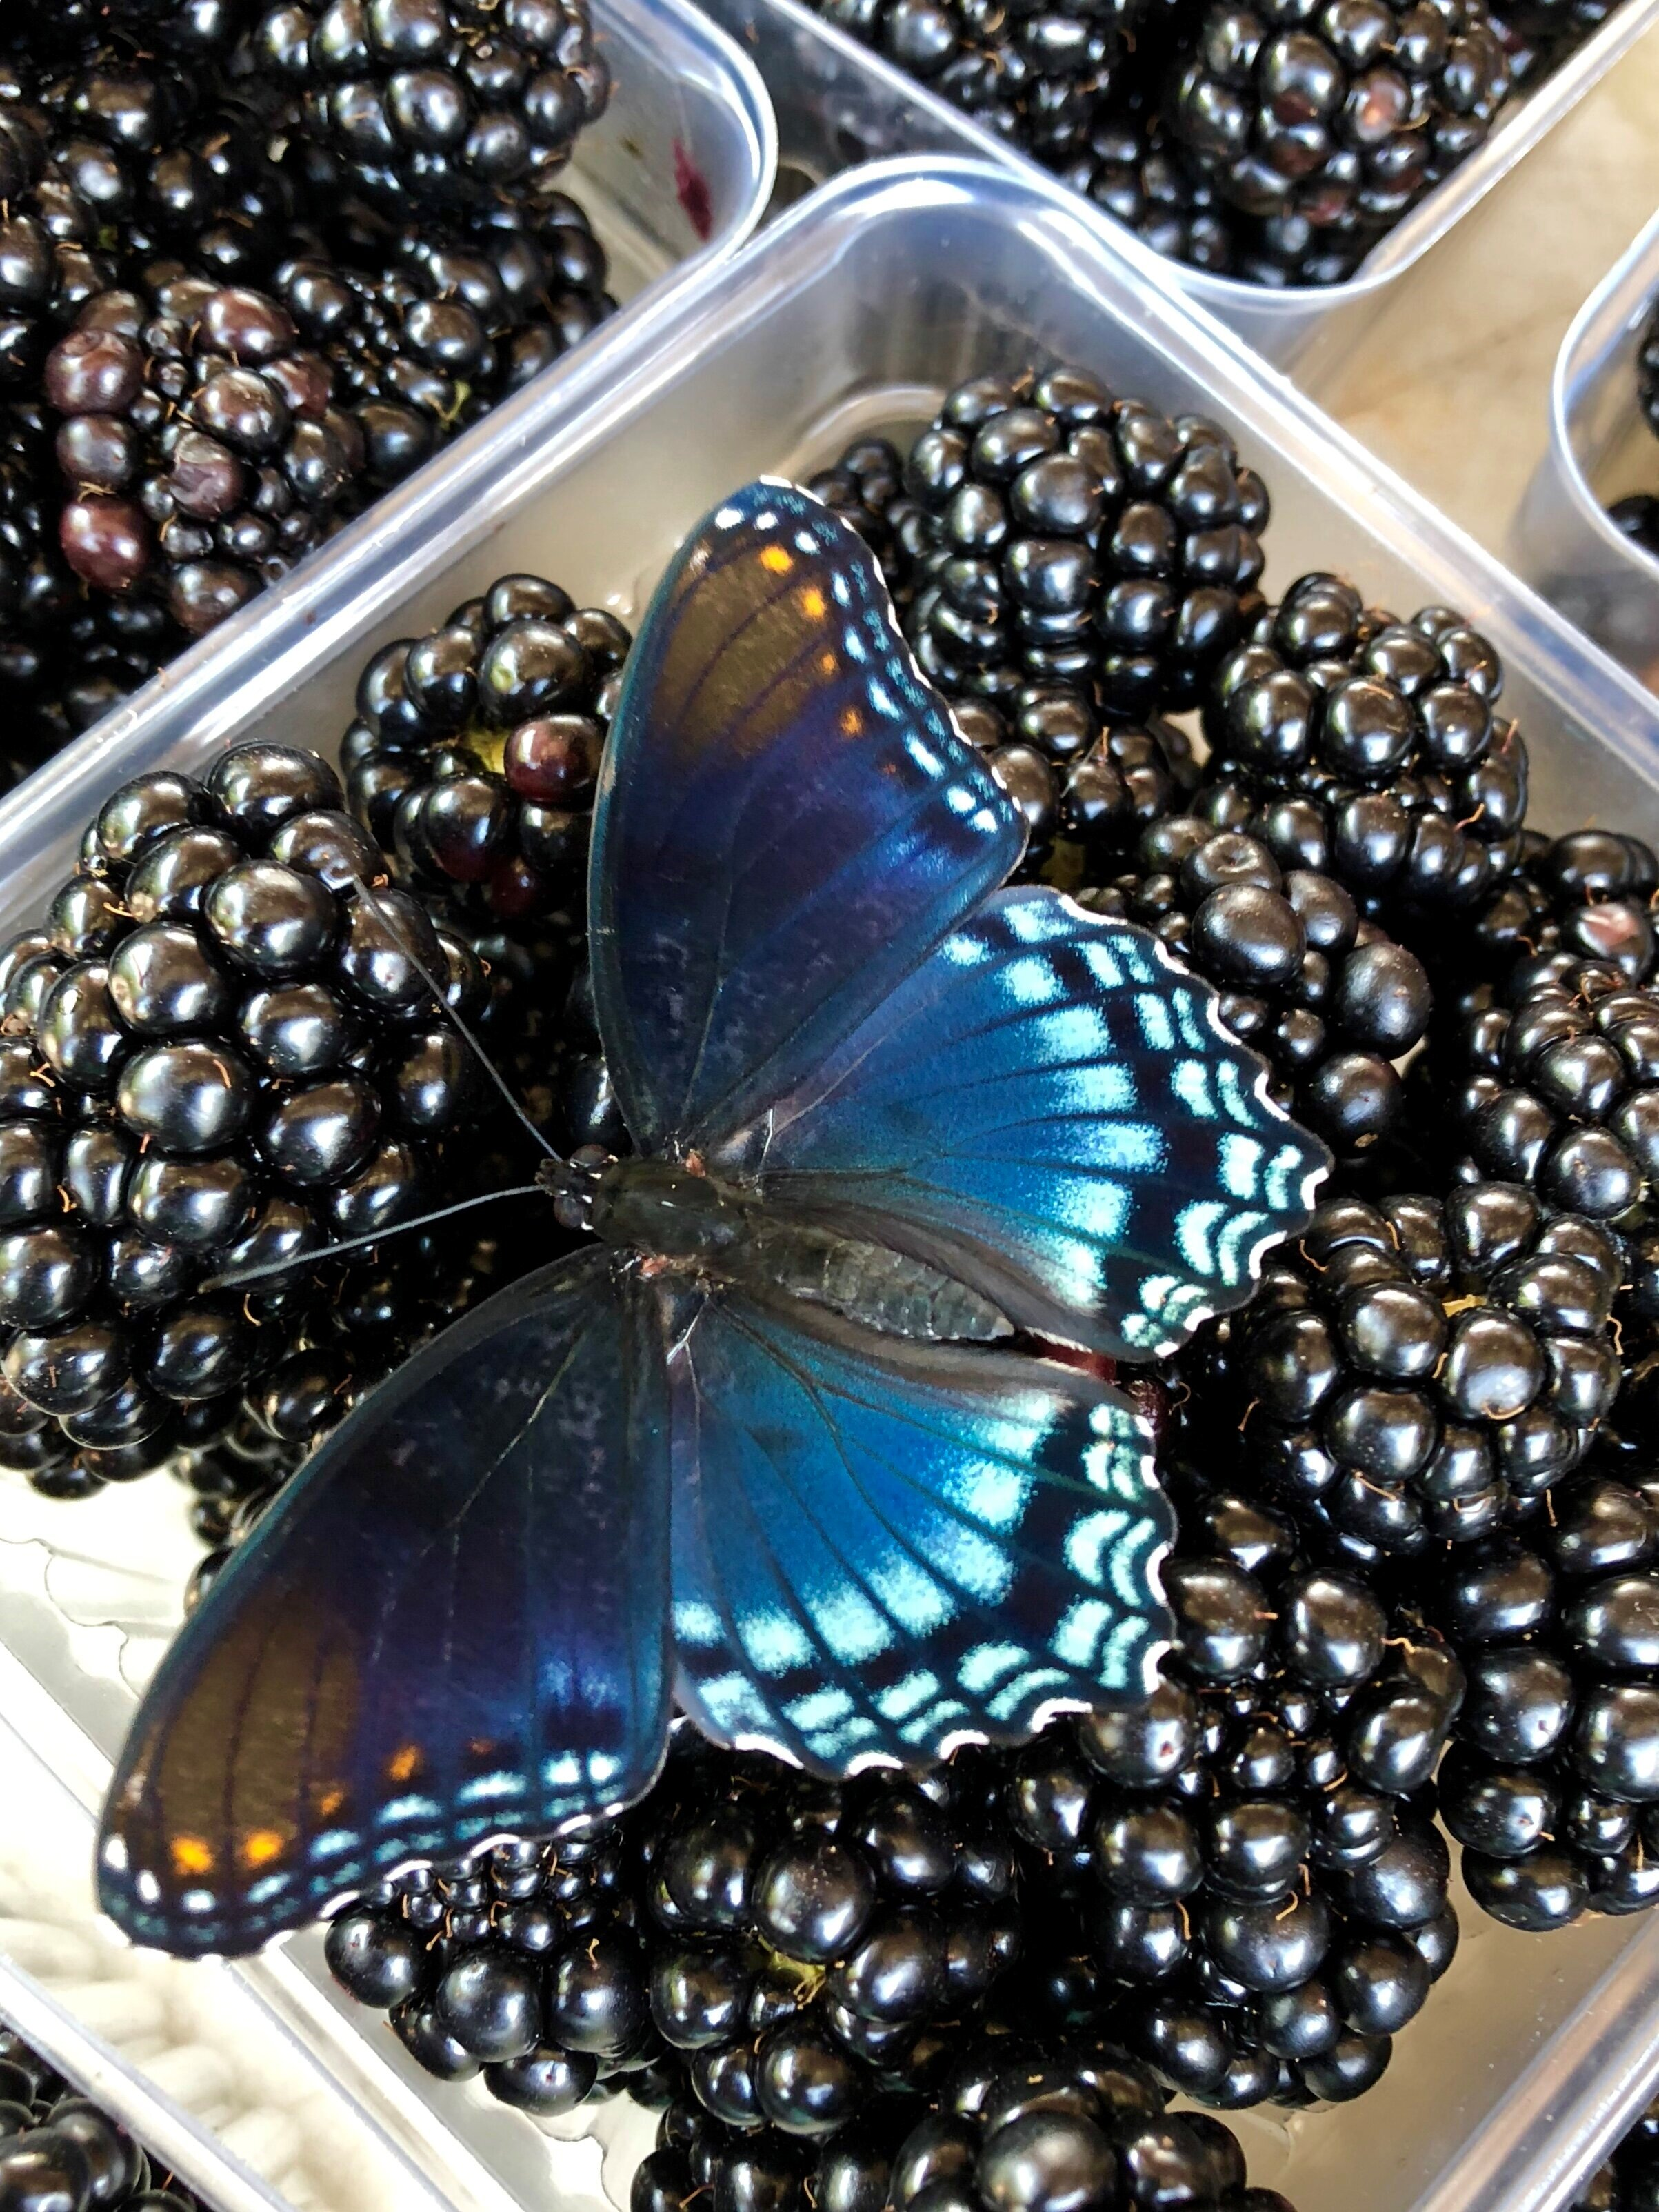 Butterfly at Farmers Market in North Carolina